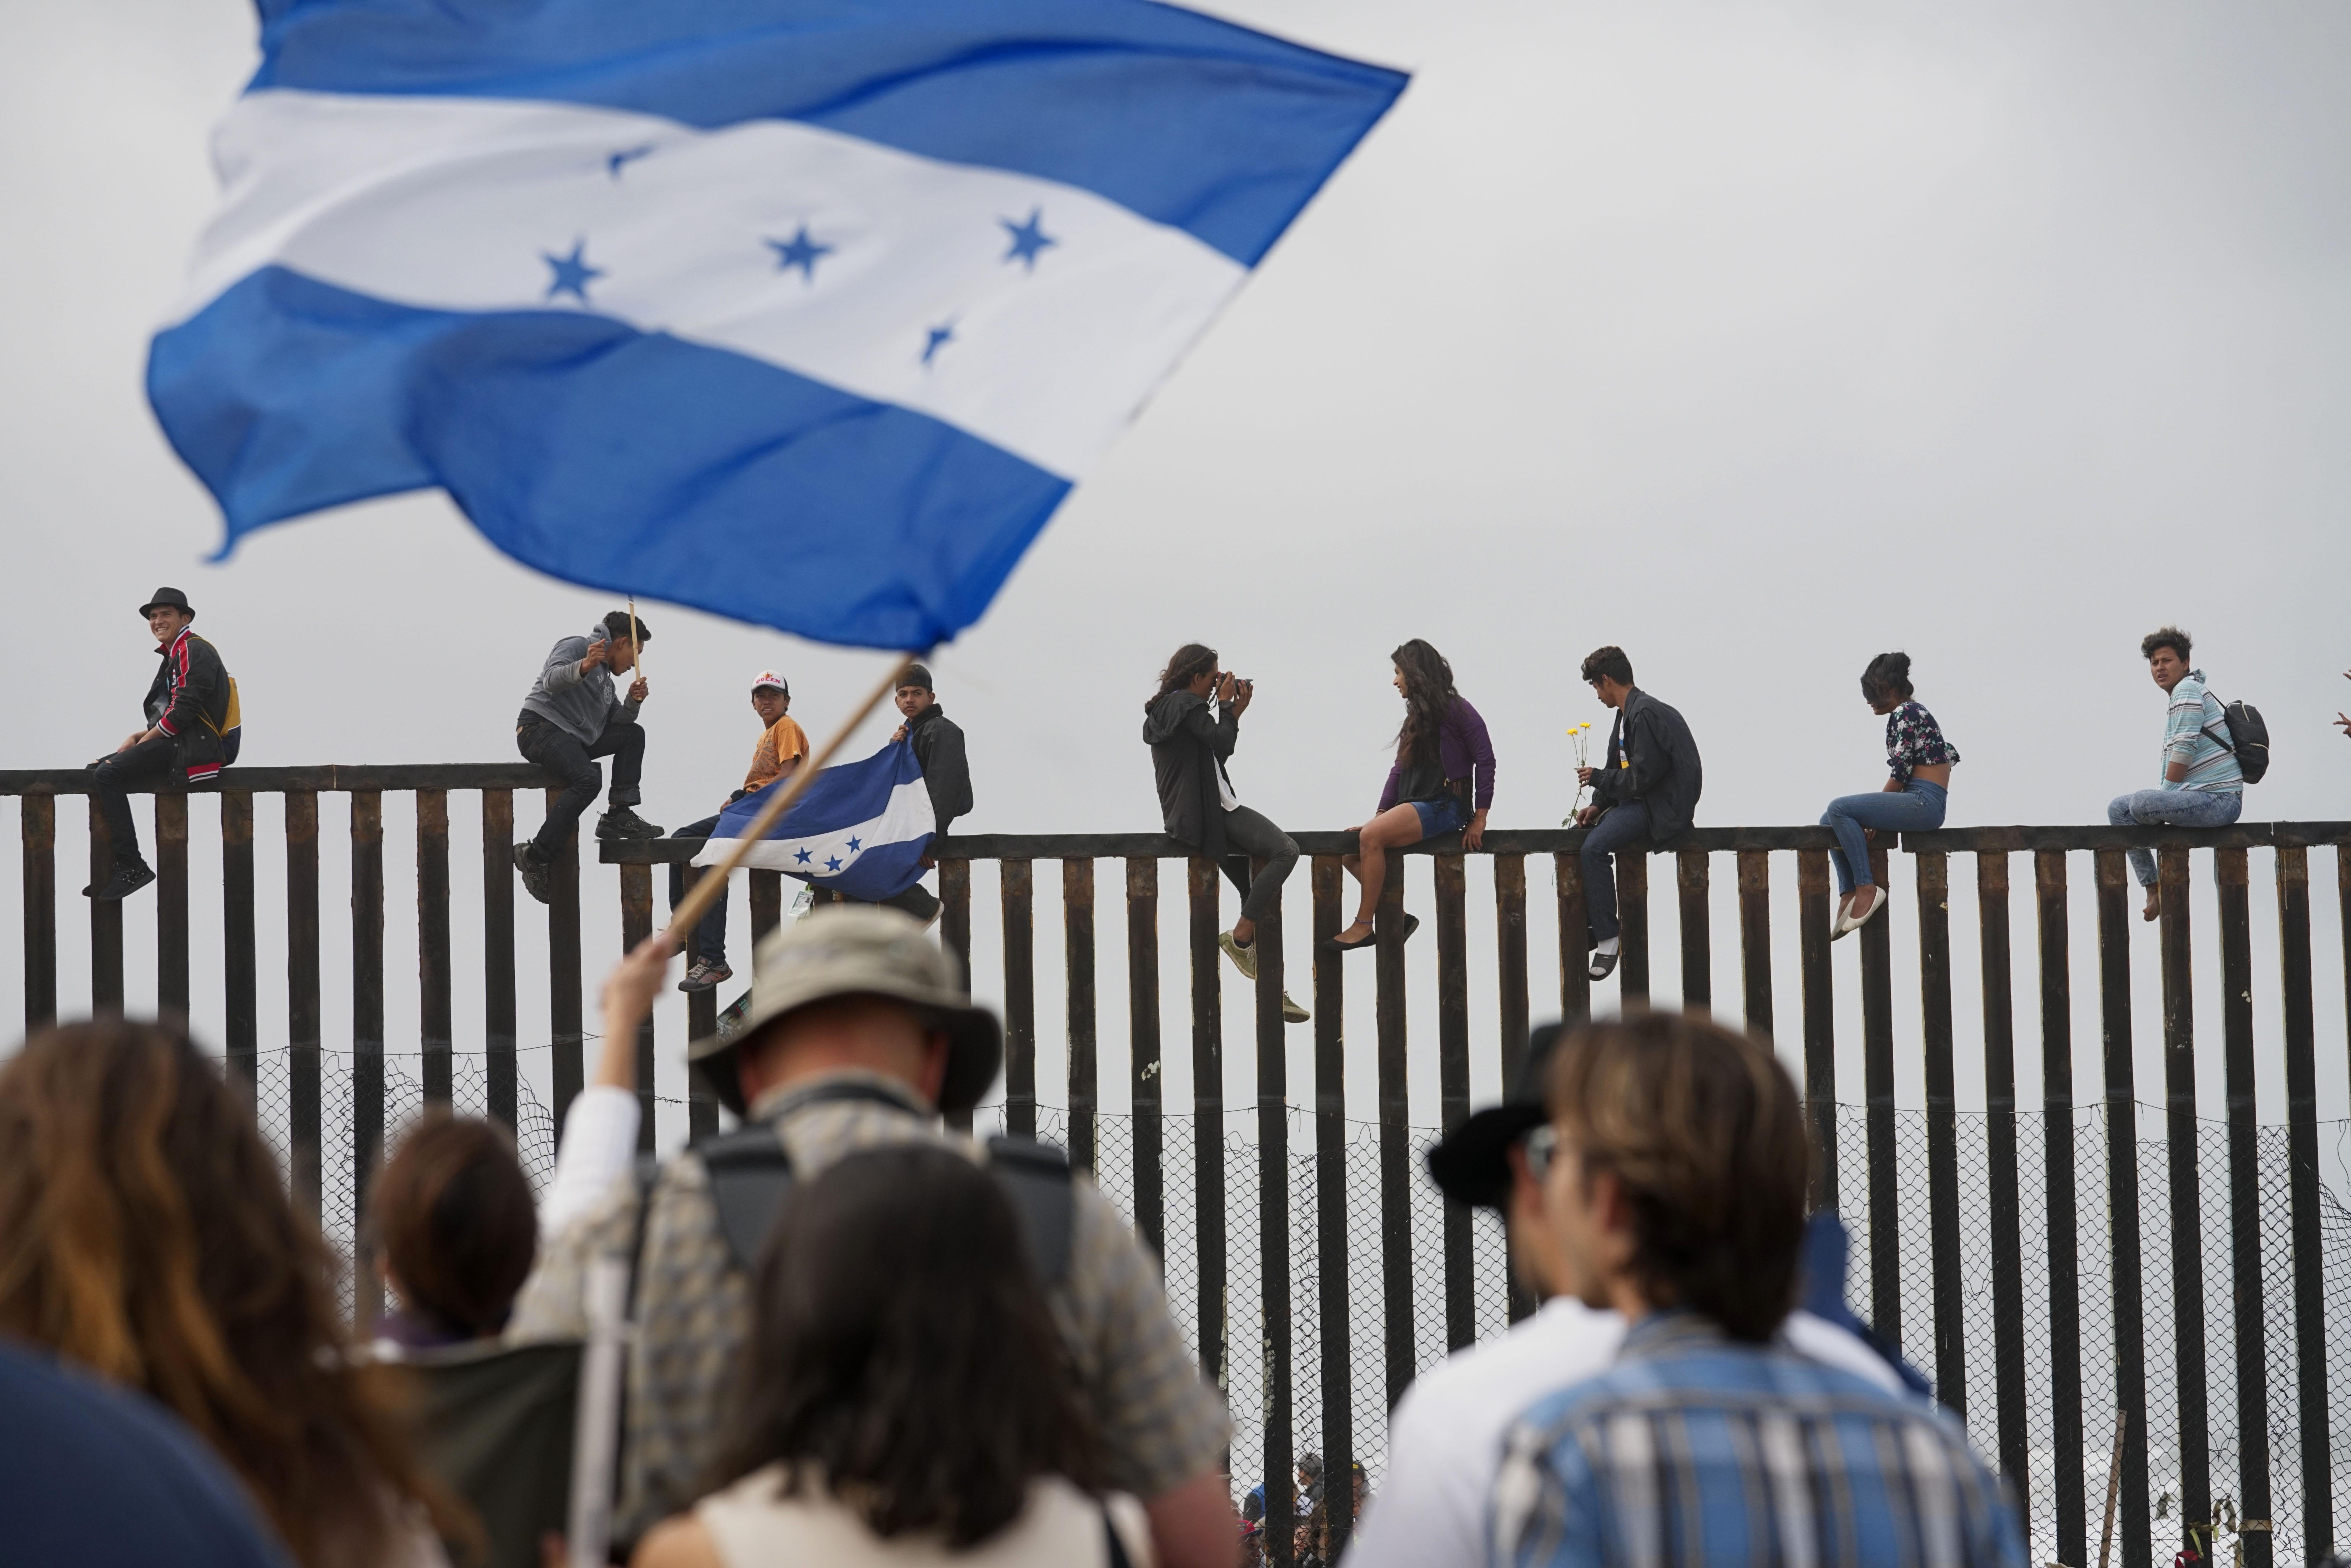 Migrant caravan demonstrators climb the US-Mexico border fence during a rally, on April 29, 2018, in San Ysidro, California.